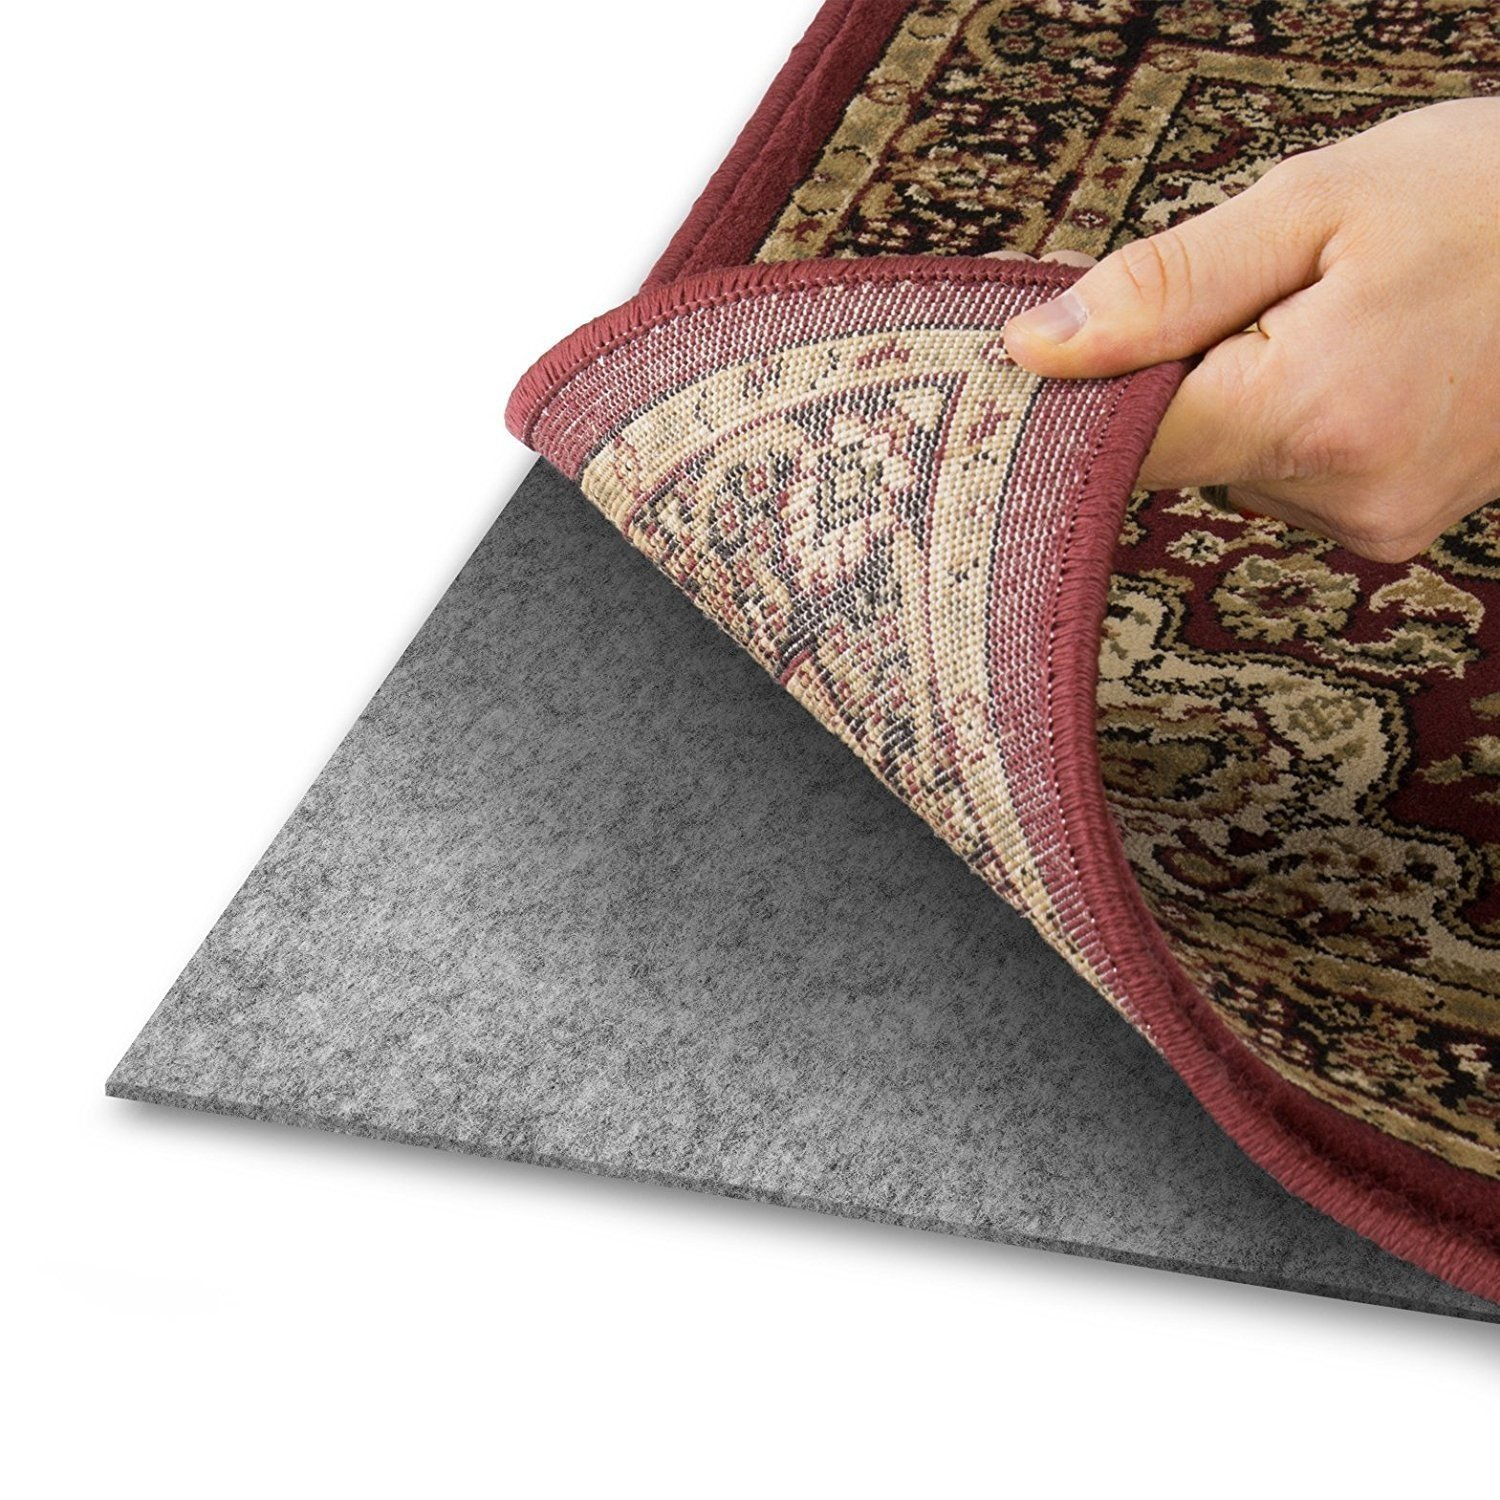 Home Queen Felt Rug Pads for Hardwood Floors Oriental Rug Pads-100% Recycled-Safe for All Floors - 2'6'' x 4'